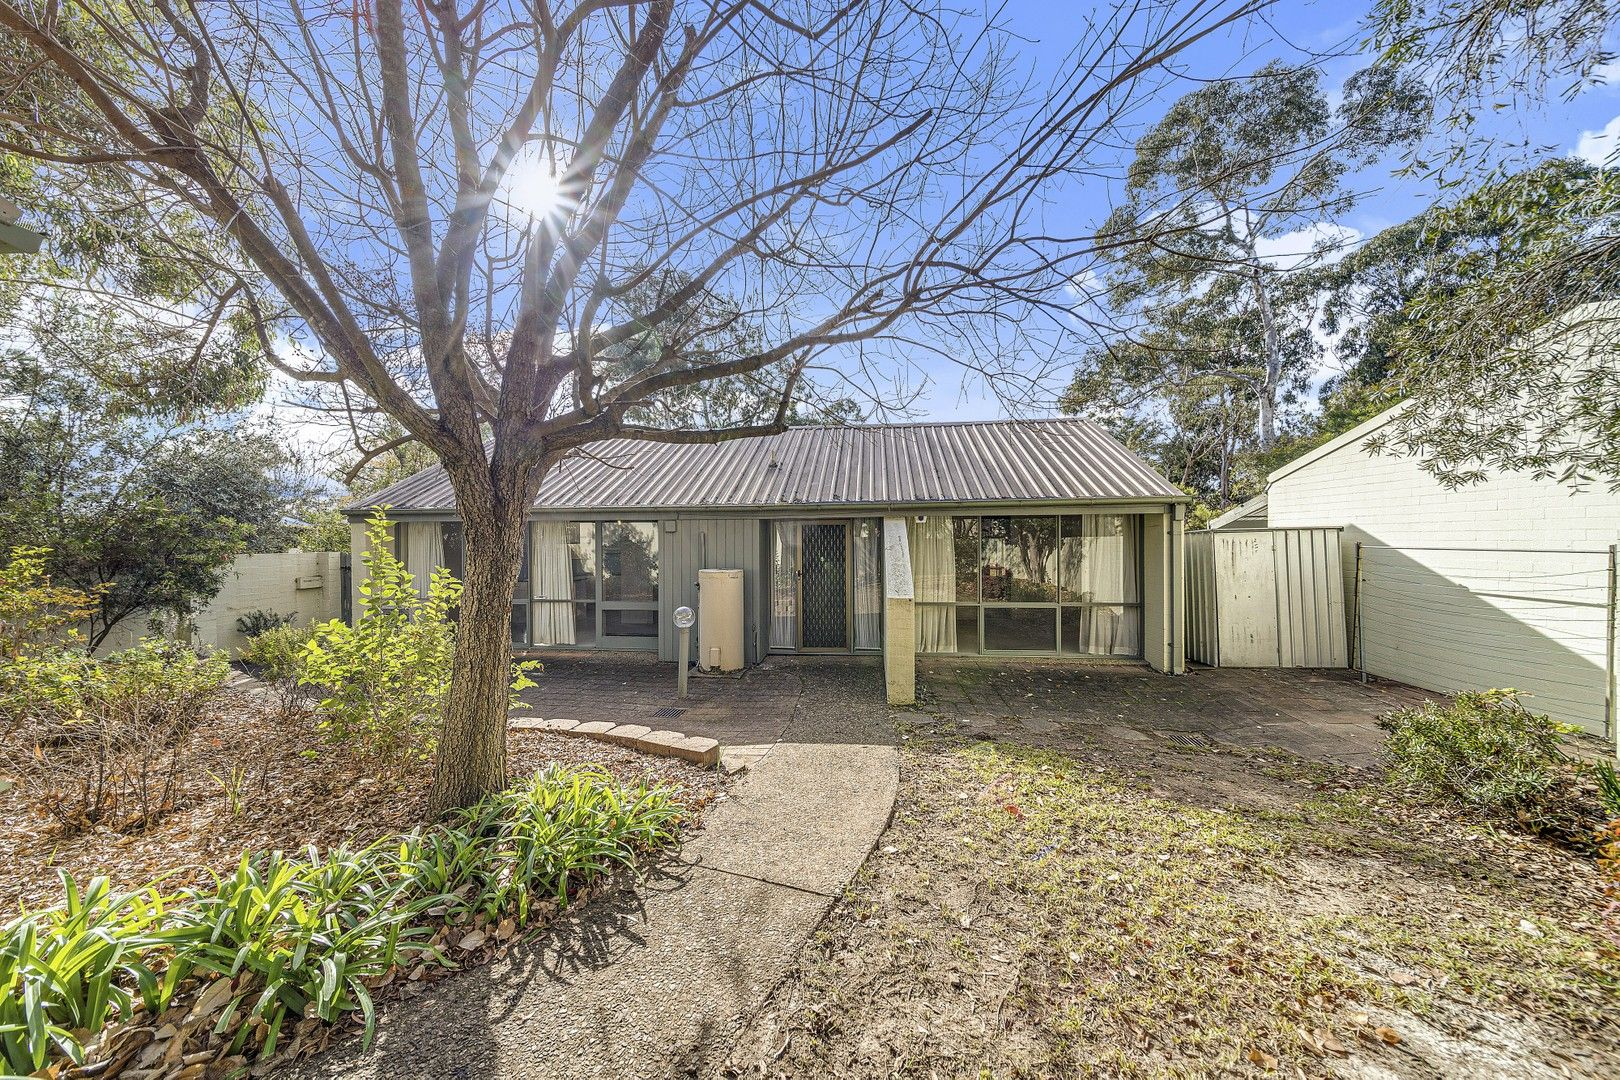 3/18 Marr Street, Pearce ACT 2607, Image 0